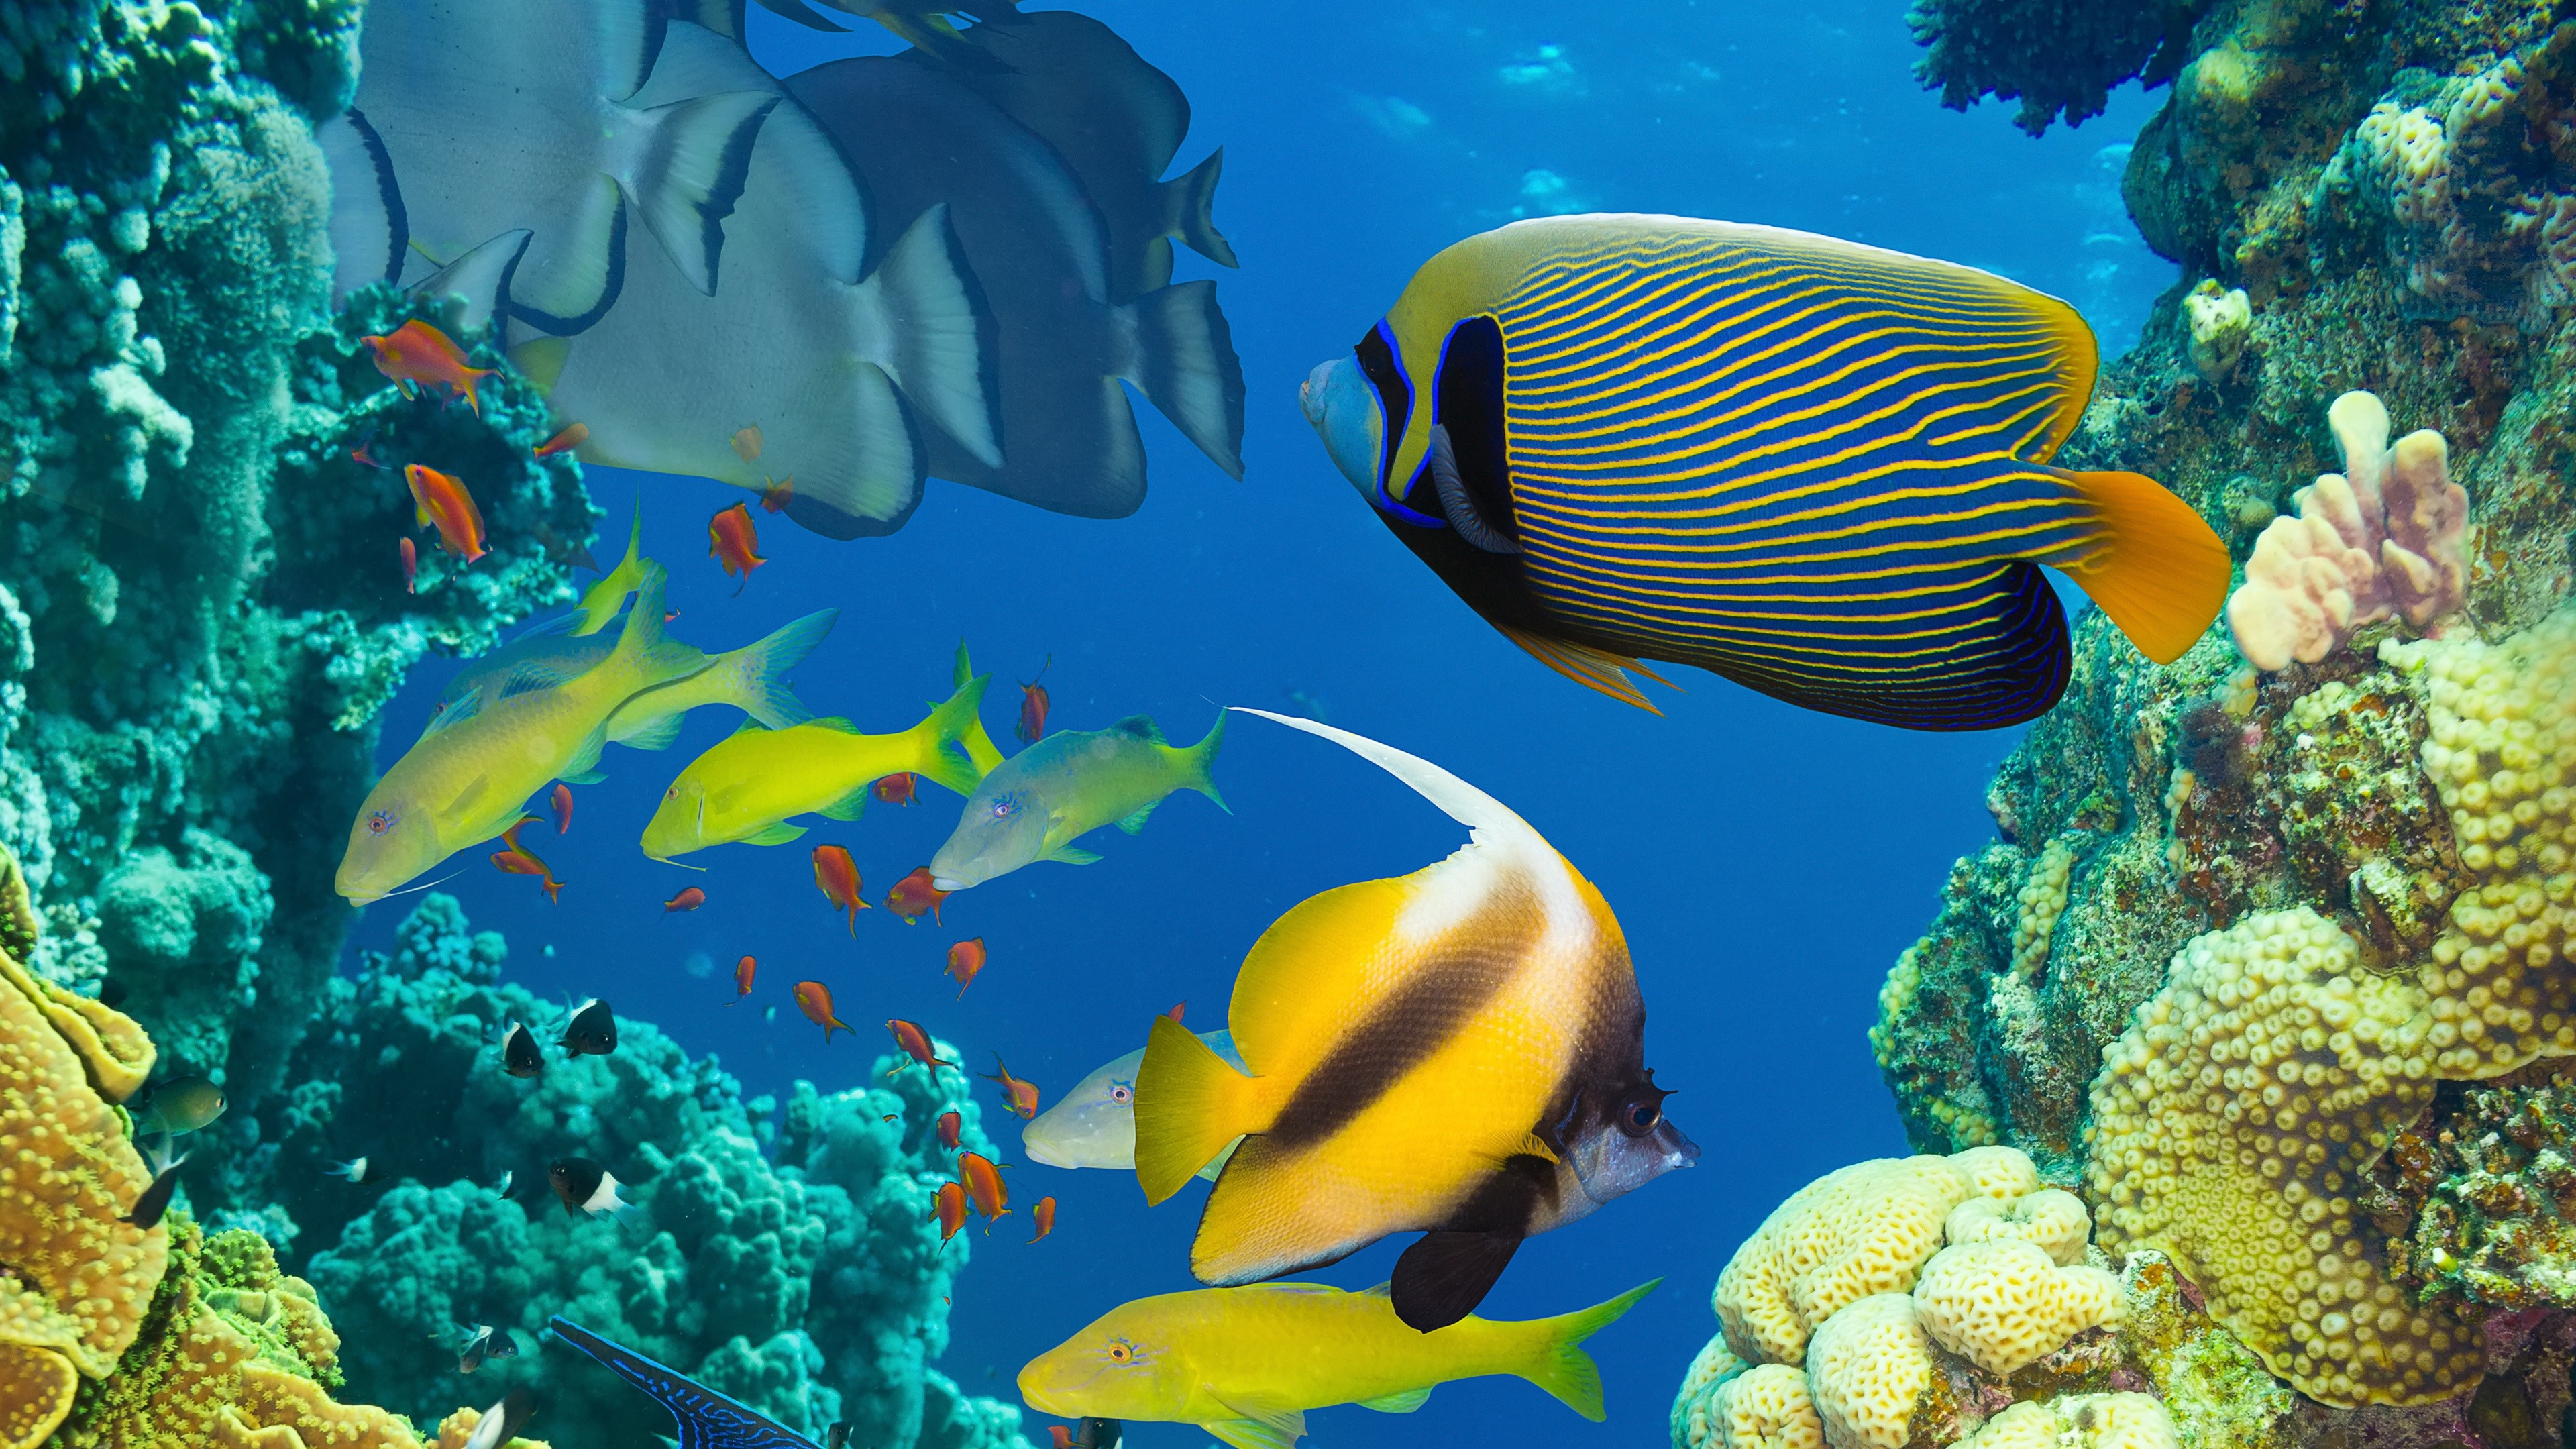 3840x2160 Beautiful fish in the sea, underwater, coral reef Wallpaper Preview